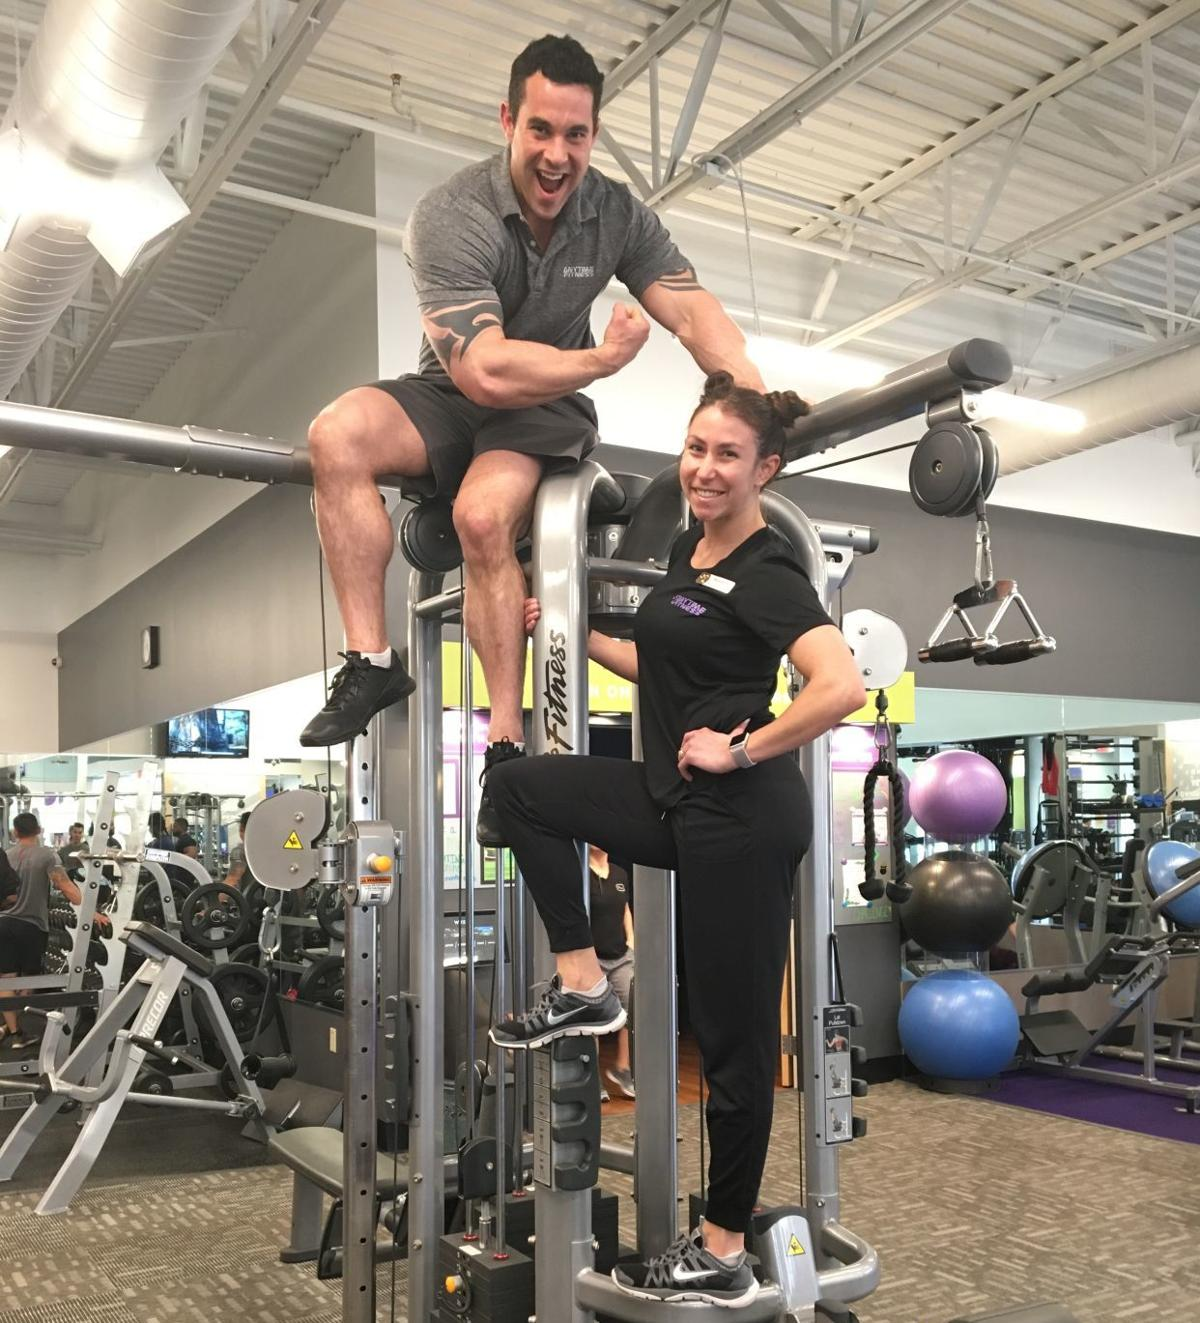 New Fitness Centers Popping Up To Meet Demand News Thepilot Com